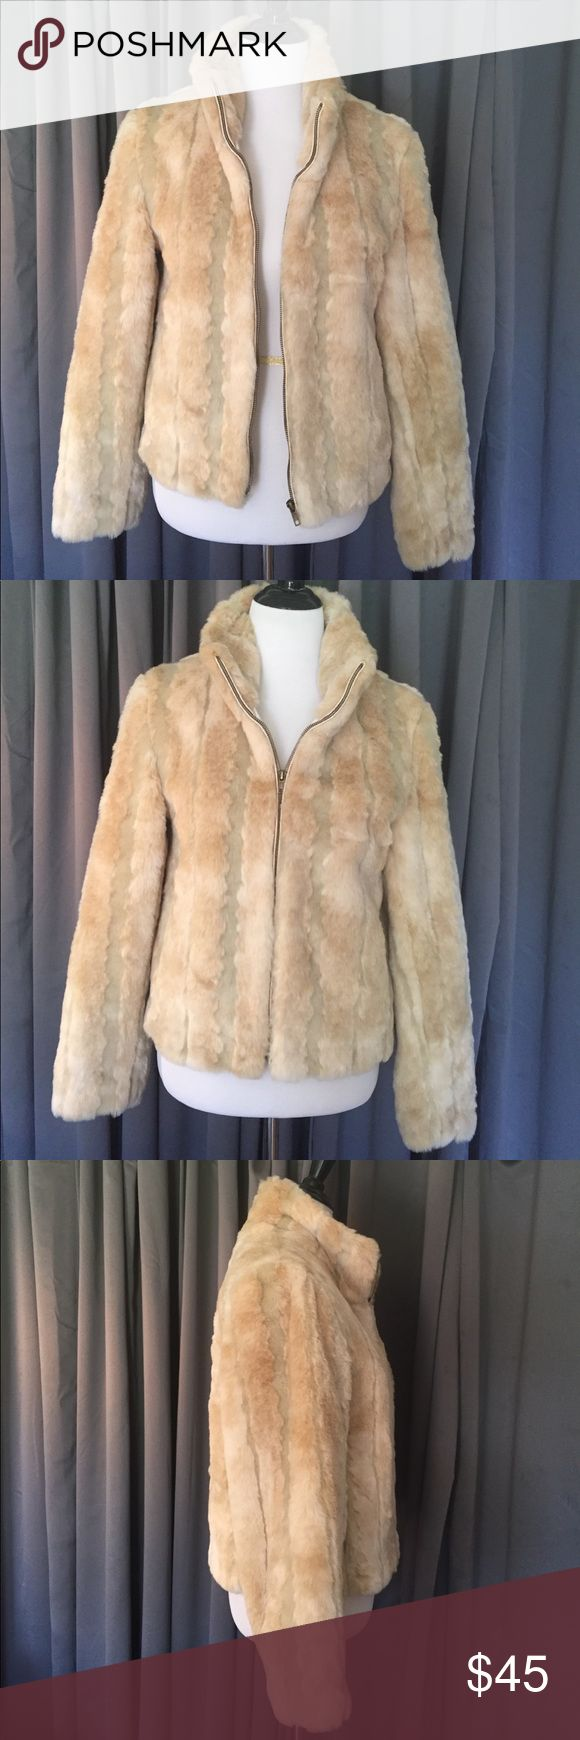 Cream Fur Jacket Zip Up Super Soft Kristen Blake S Super soft beige long sleeve beige zip up faux fur jacket. By Kristen Blake. Size Small. I usually where a L/XL and this fits me comfortably. Excellent condition. Kristen Blake Jackets & Coats